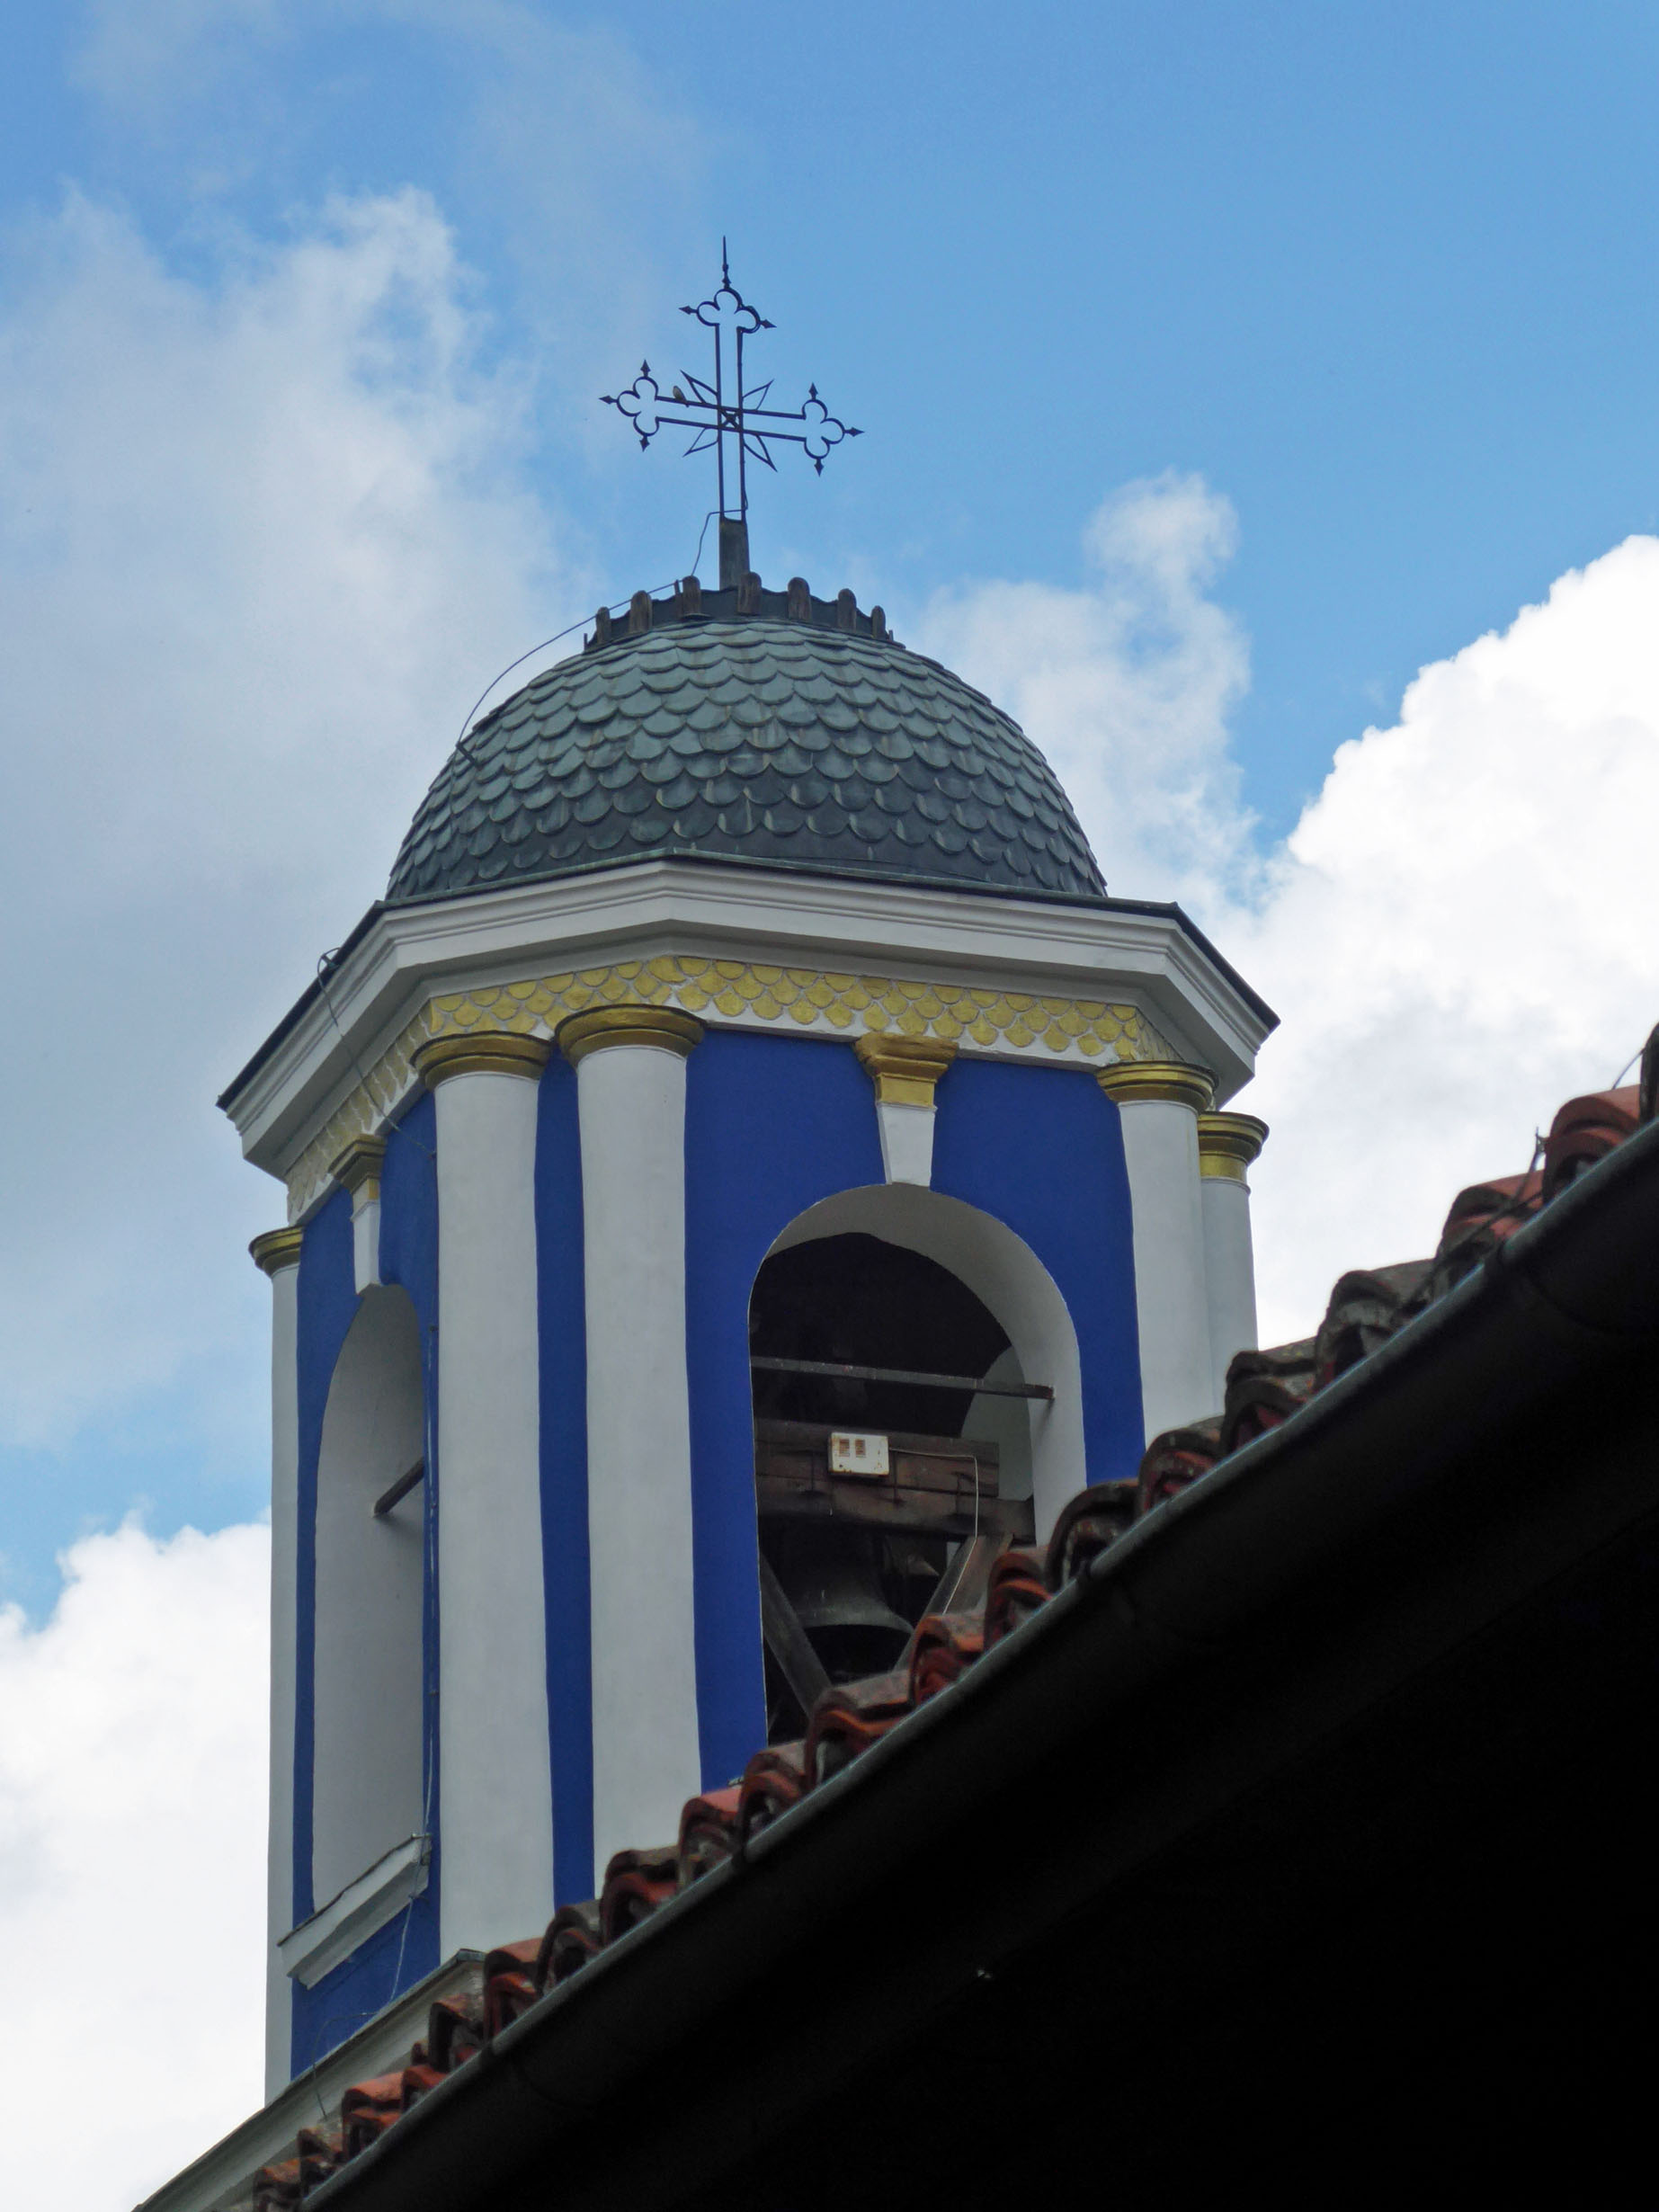 Blue and white tower with bells and domed roof